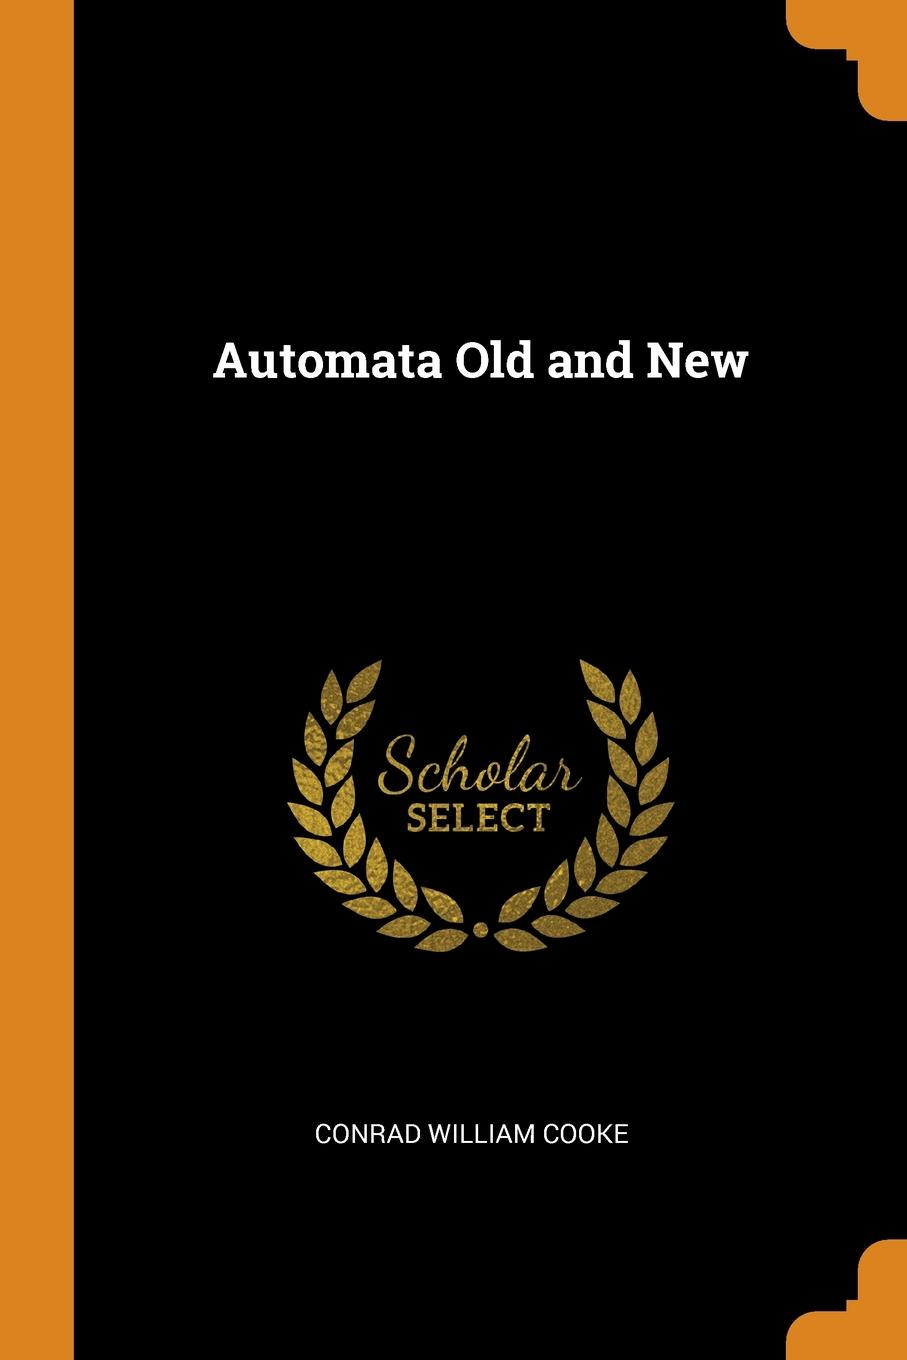 Automata Old and New